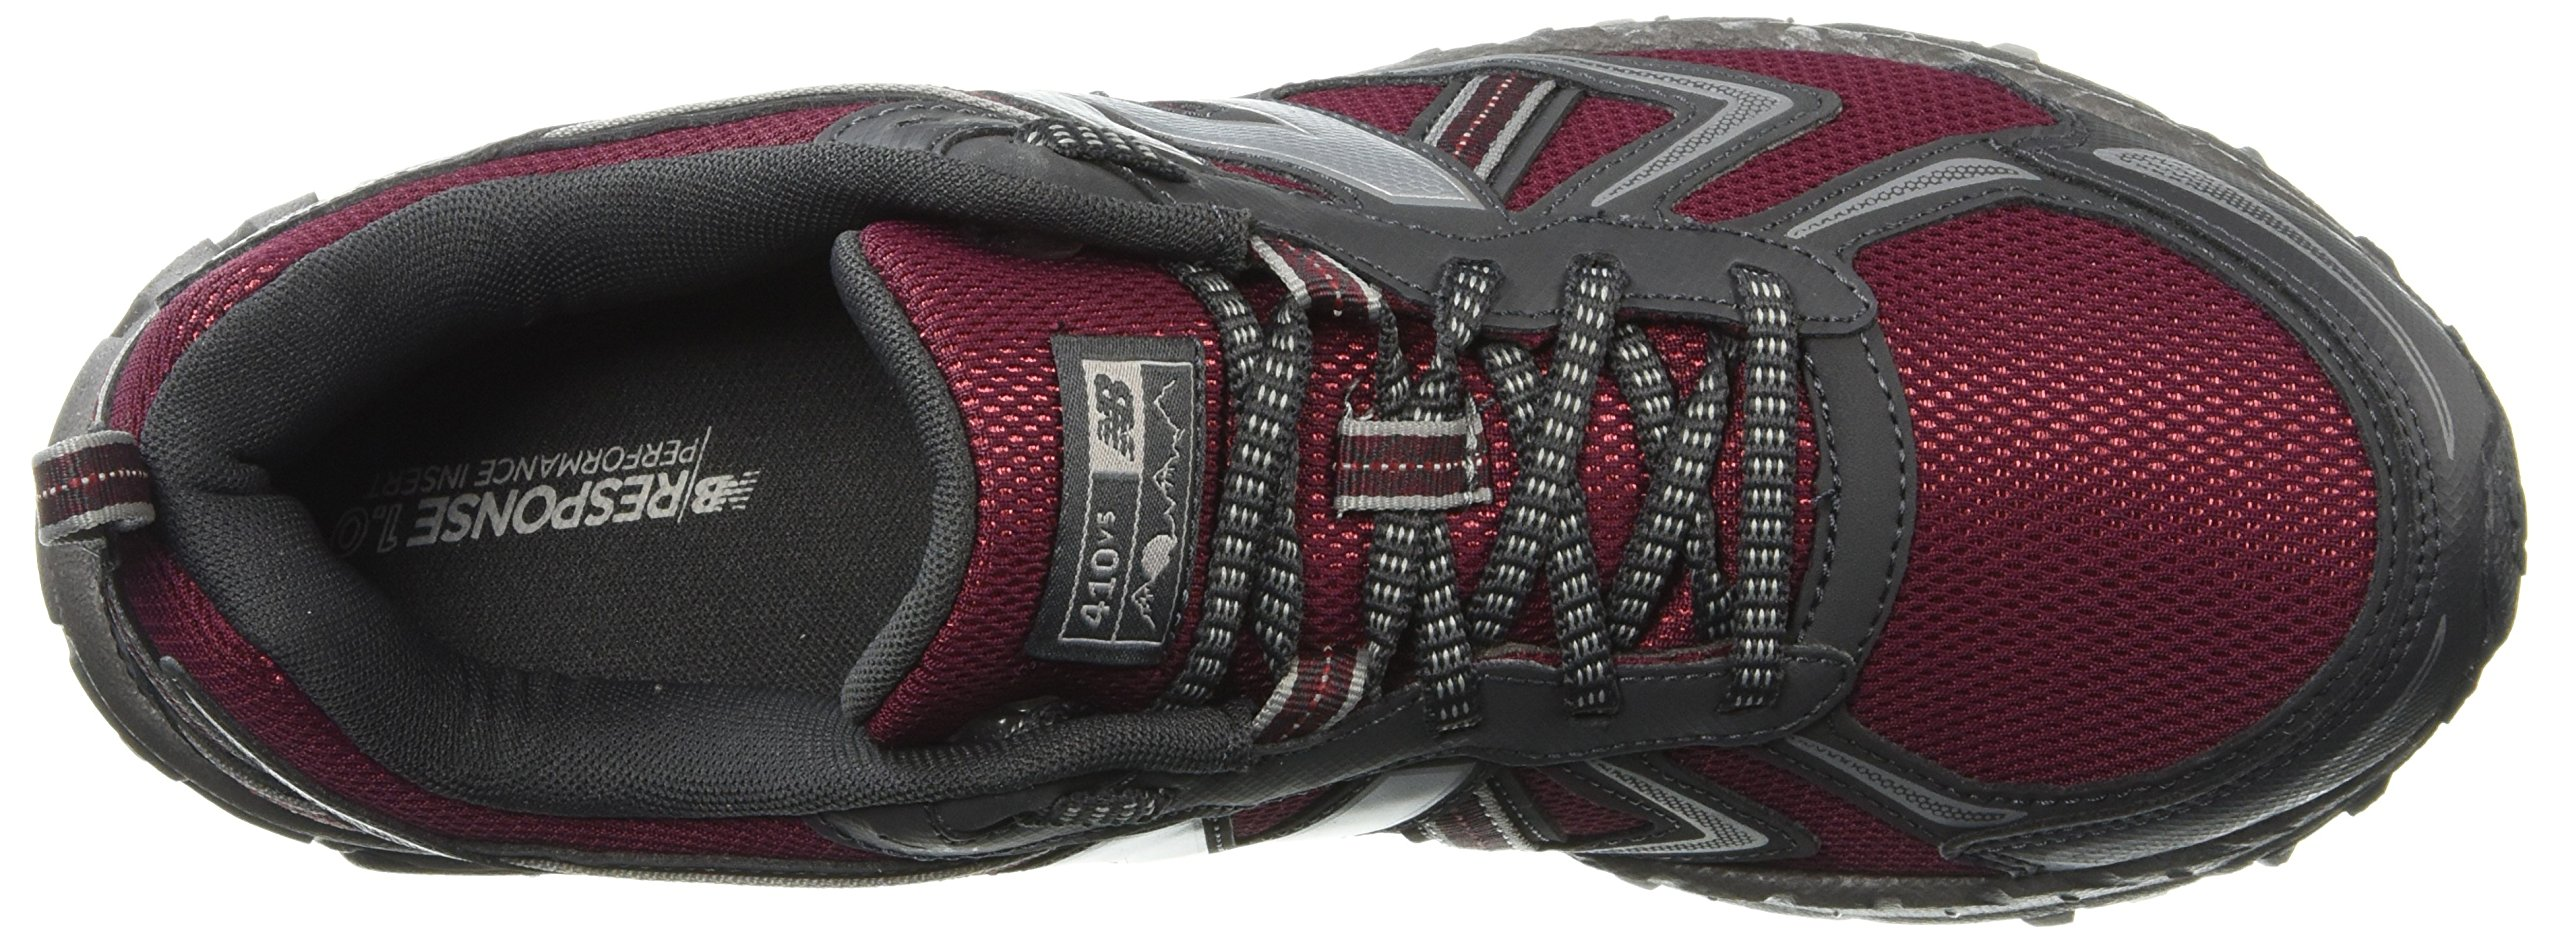 New Balance Men's MT410v5 Cushioning Trail Running Shoe, Oxblood, 7 D US by New Balance (Image #7)